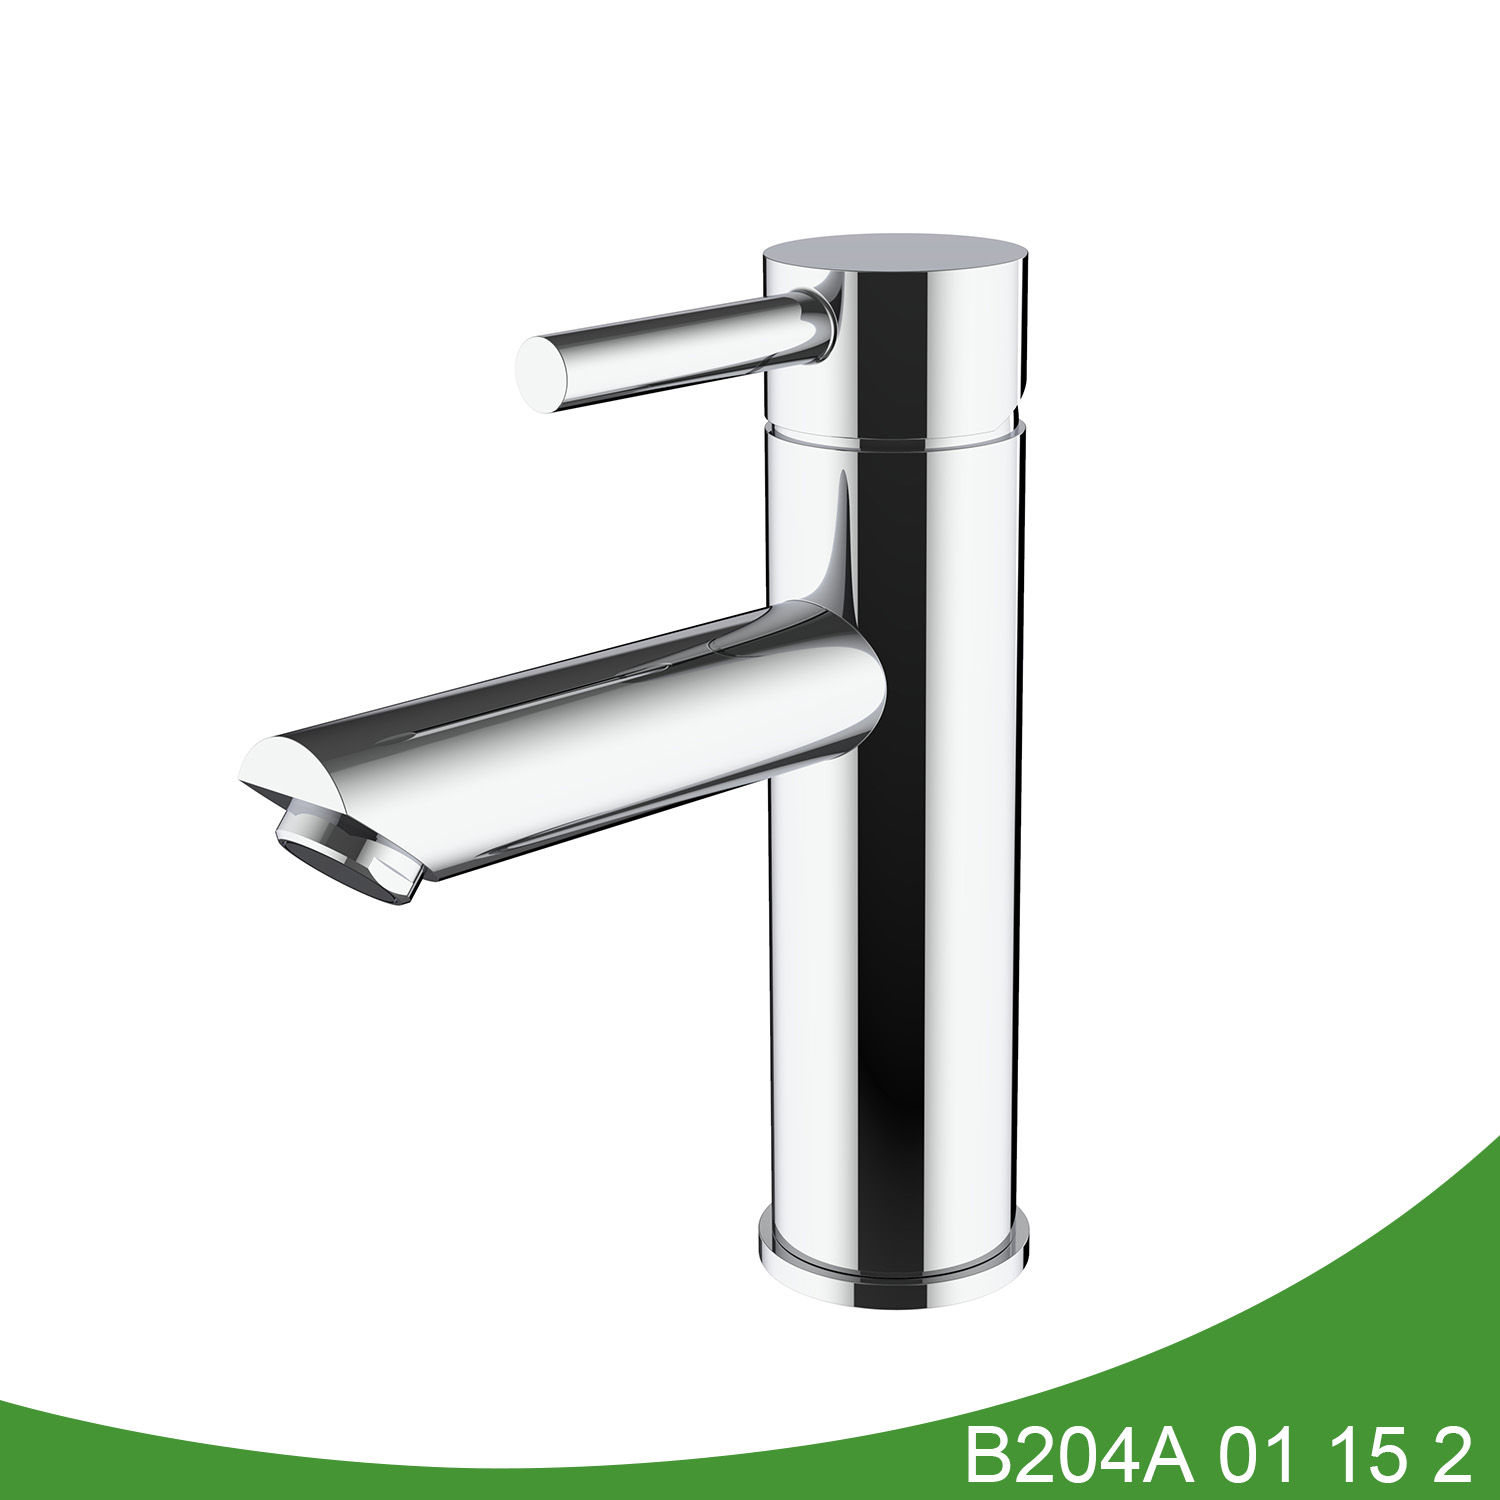 Polish stainless steel basin tap B204A 01 15 2